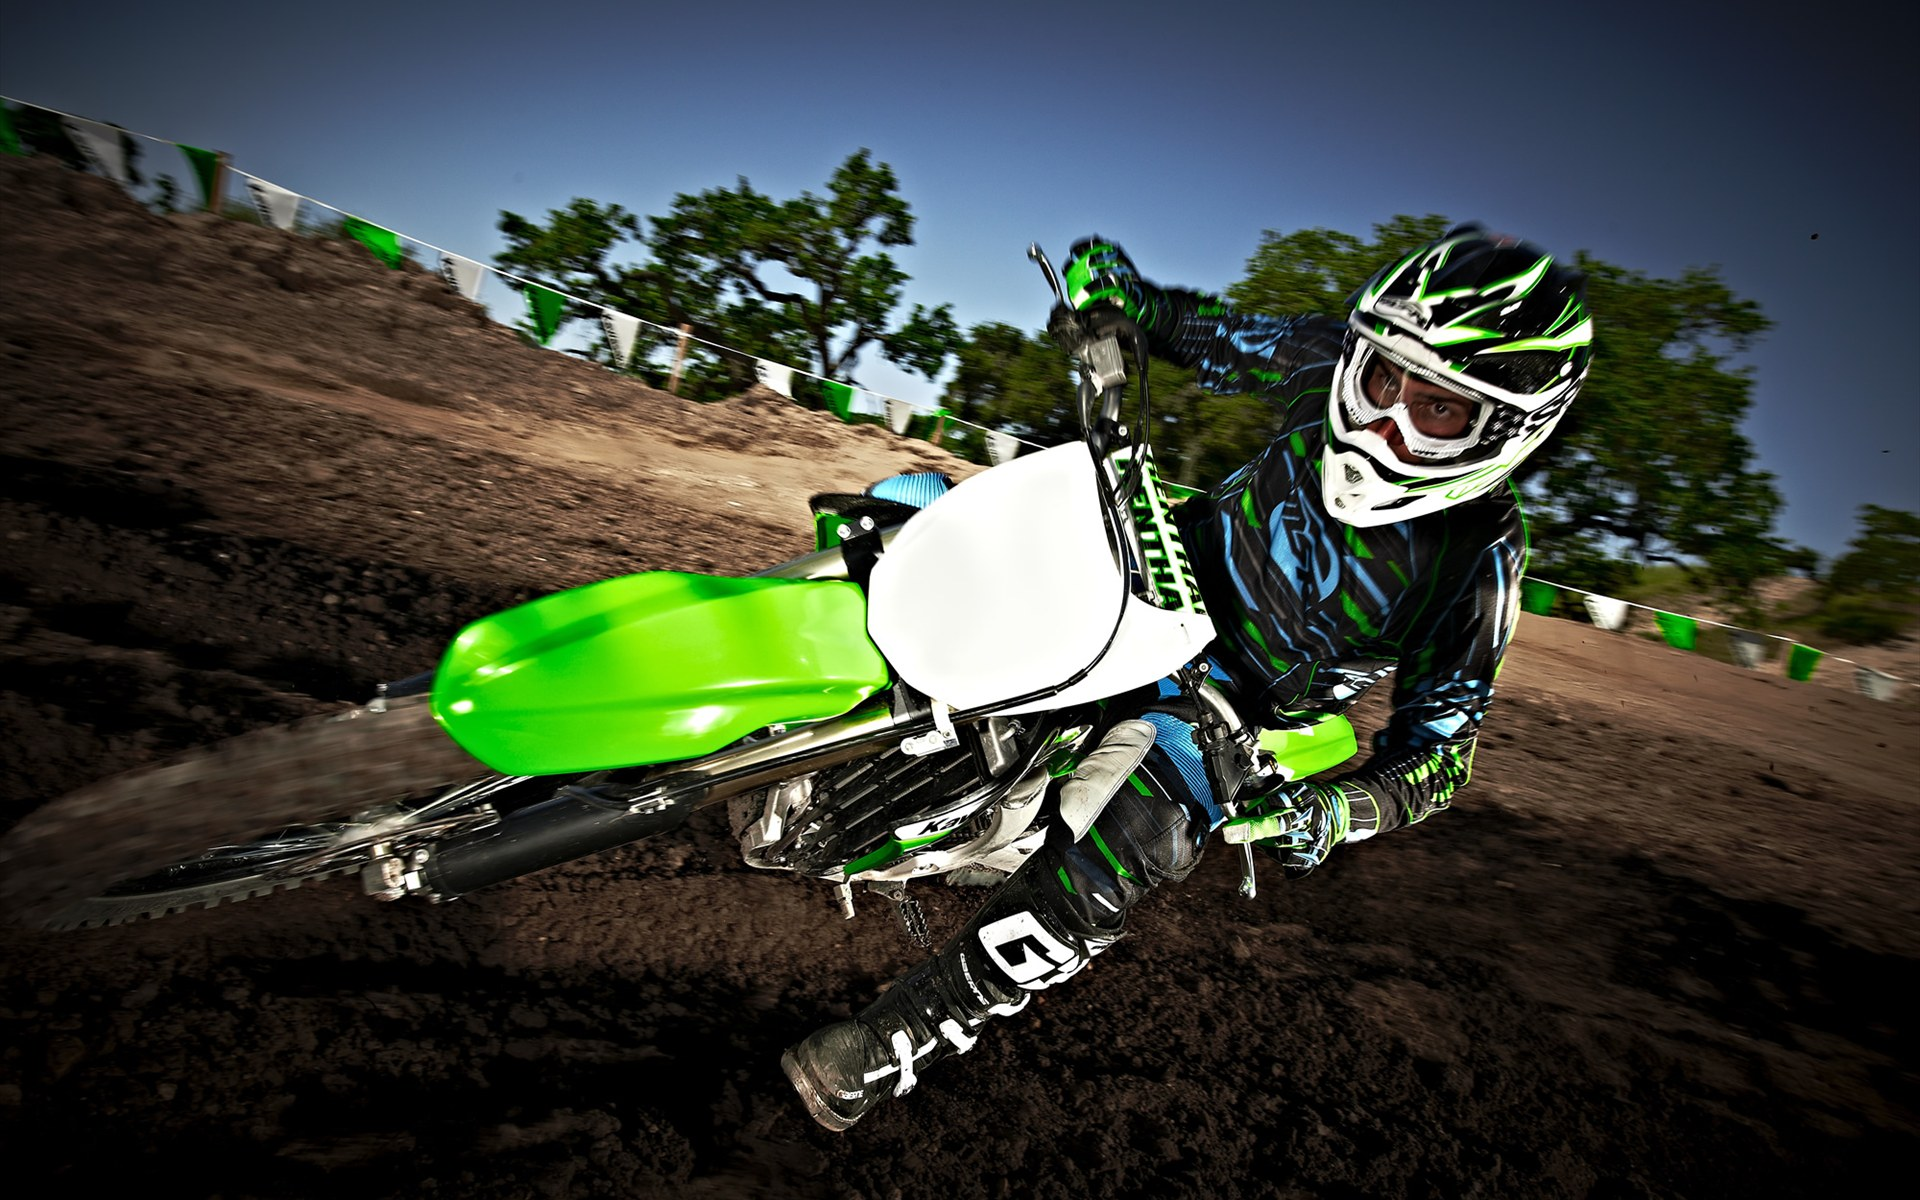 Kawasaki Kx 450f Wallpapers